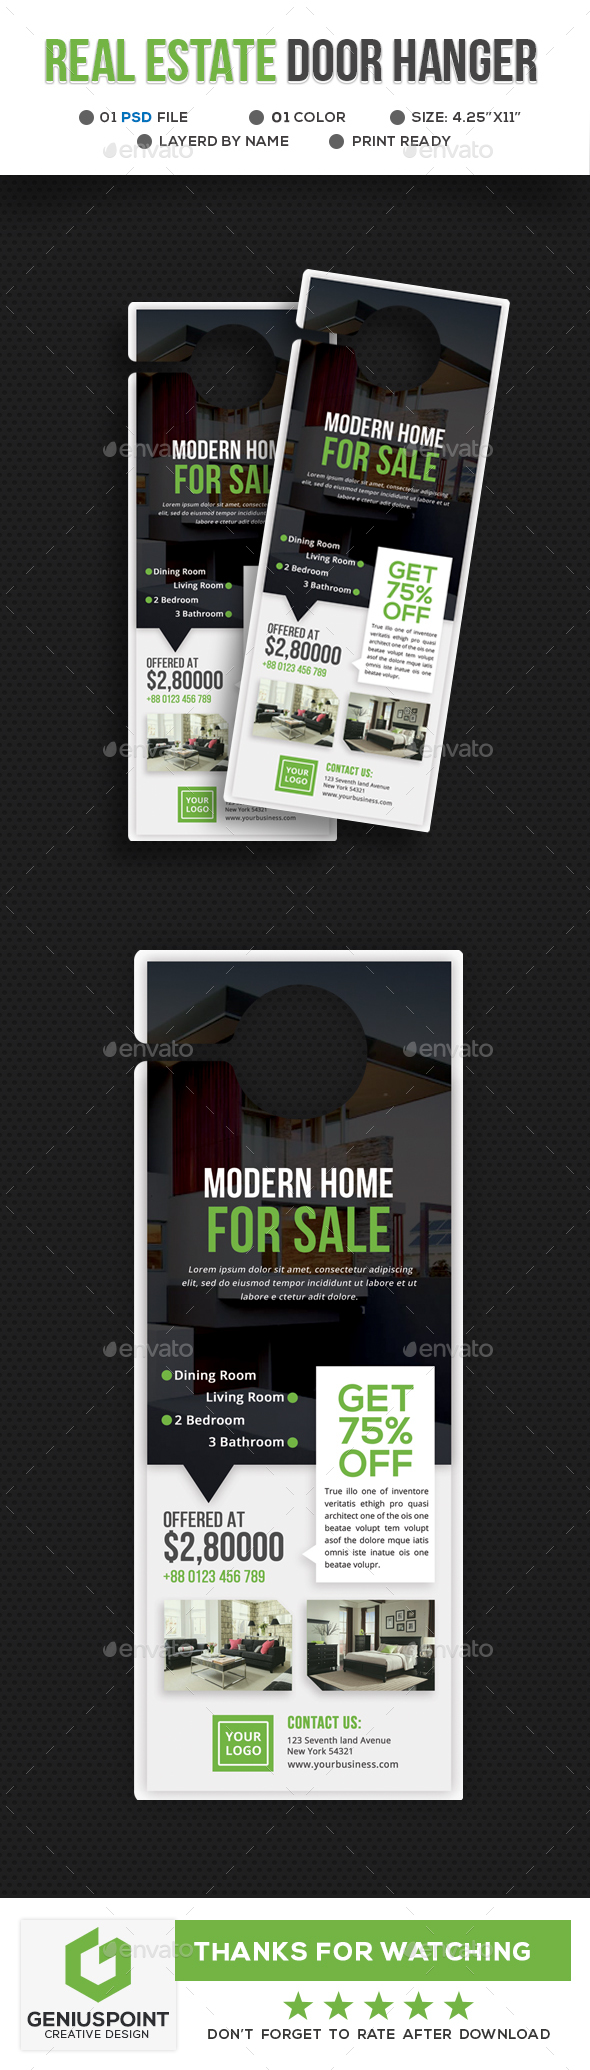 door hanger design real estate. Real Estate Door Hanger - Miscellaneous Print Templates Design